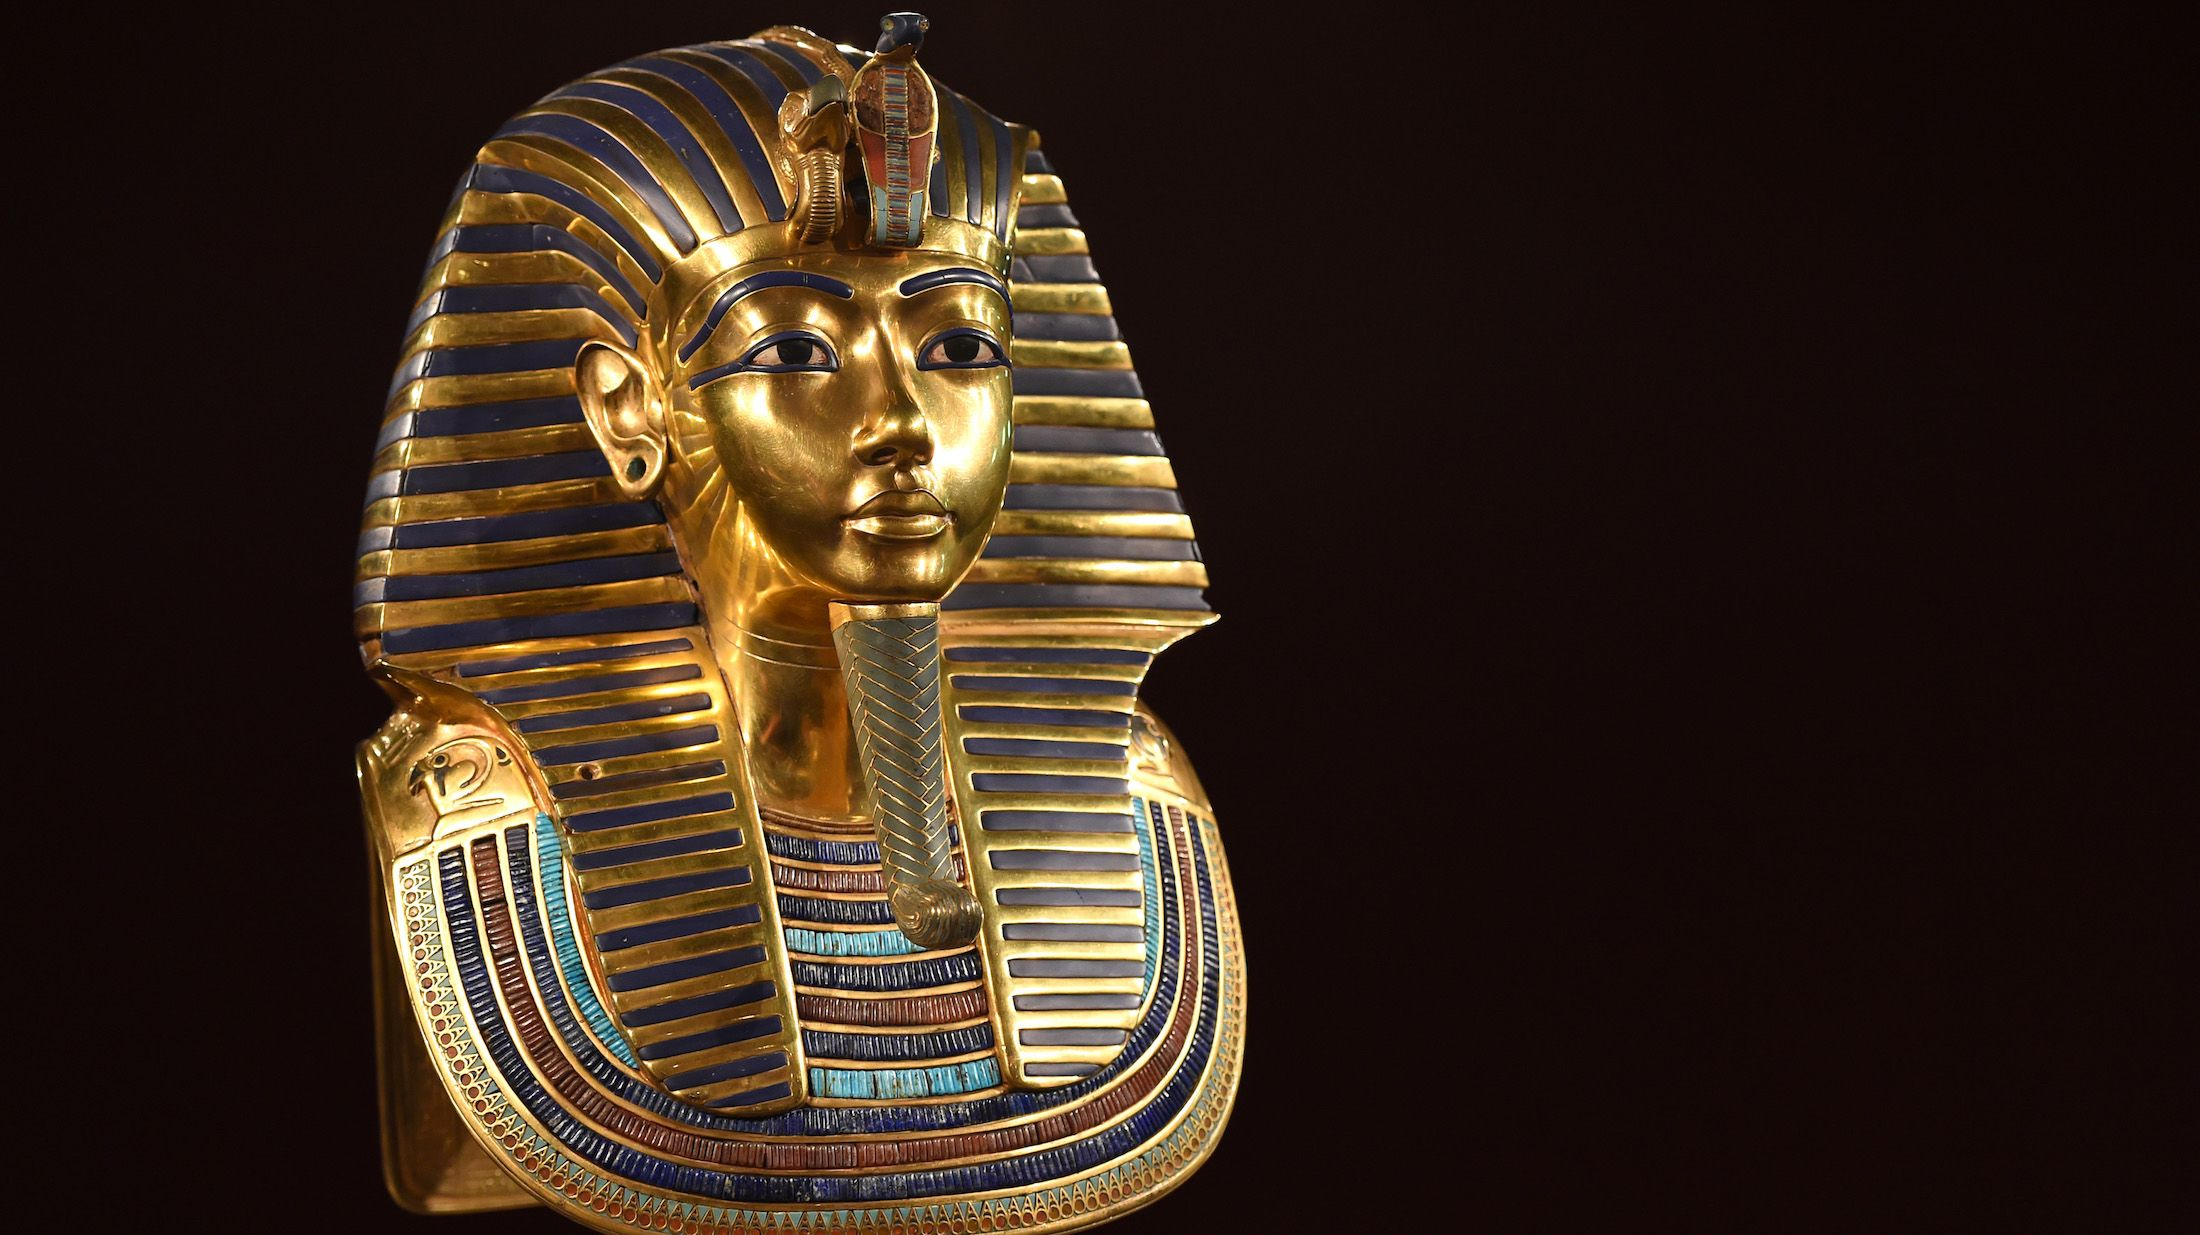 20 Surprising Facts About King Tutankhamun